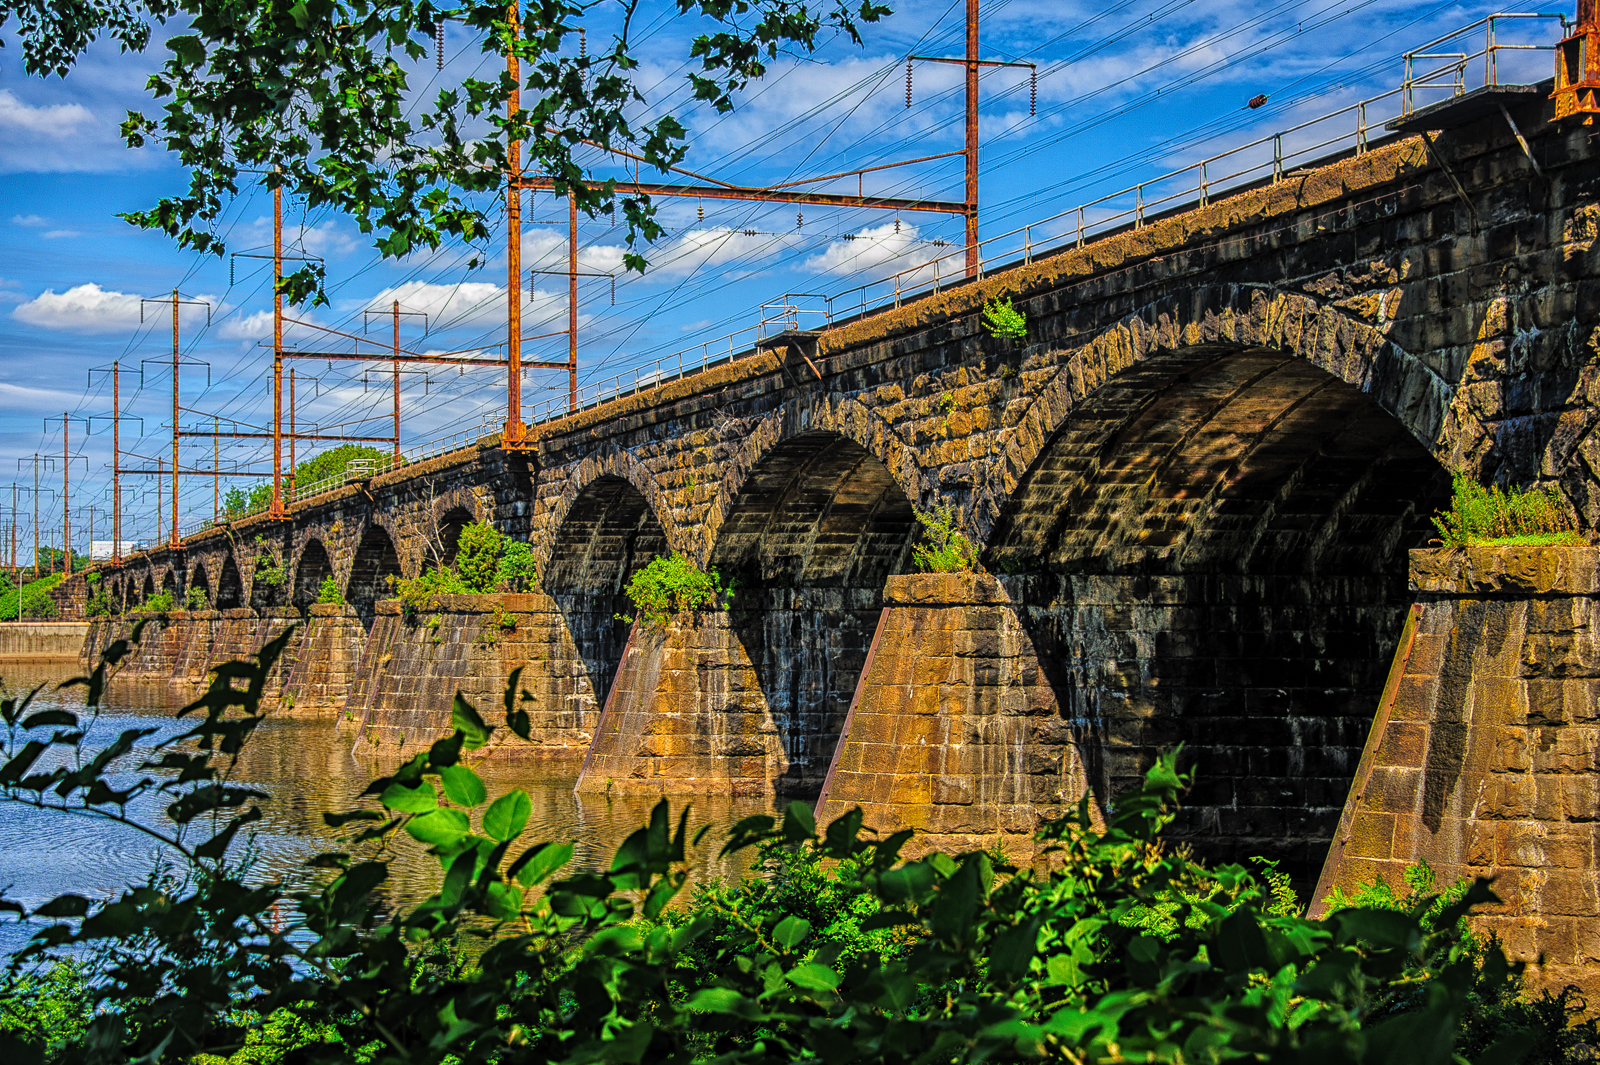 Photograph of a Trenton-railroad-bridge